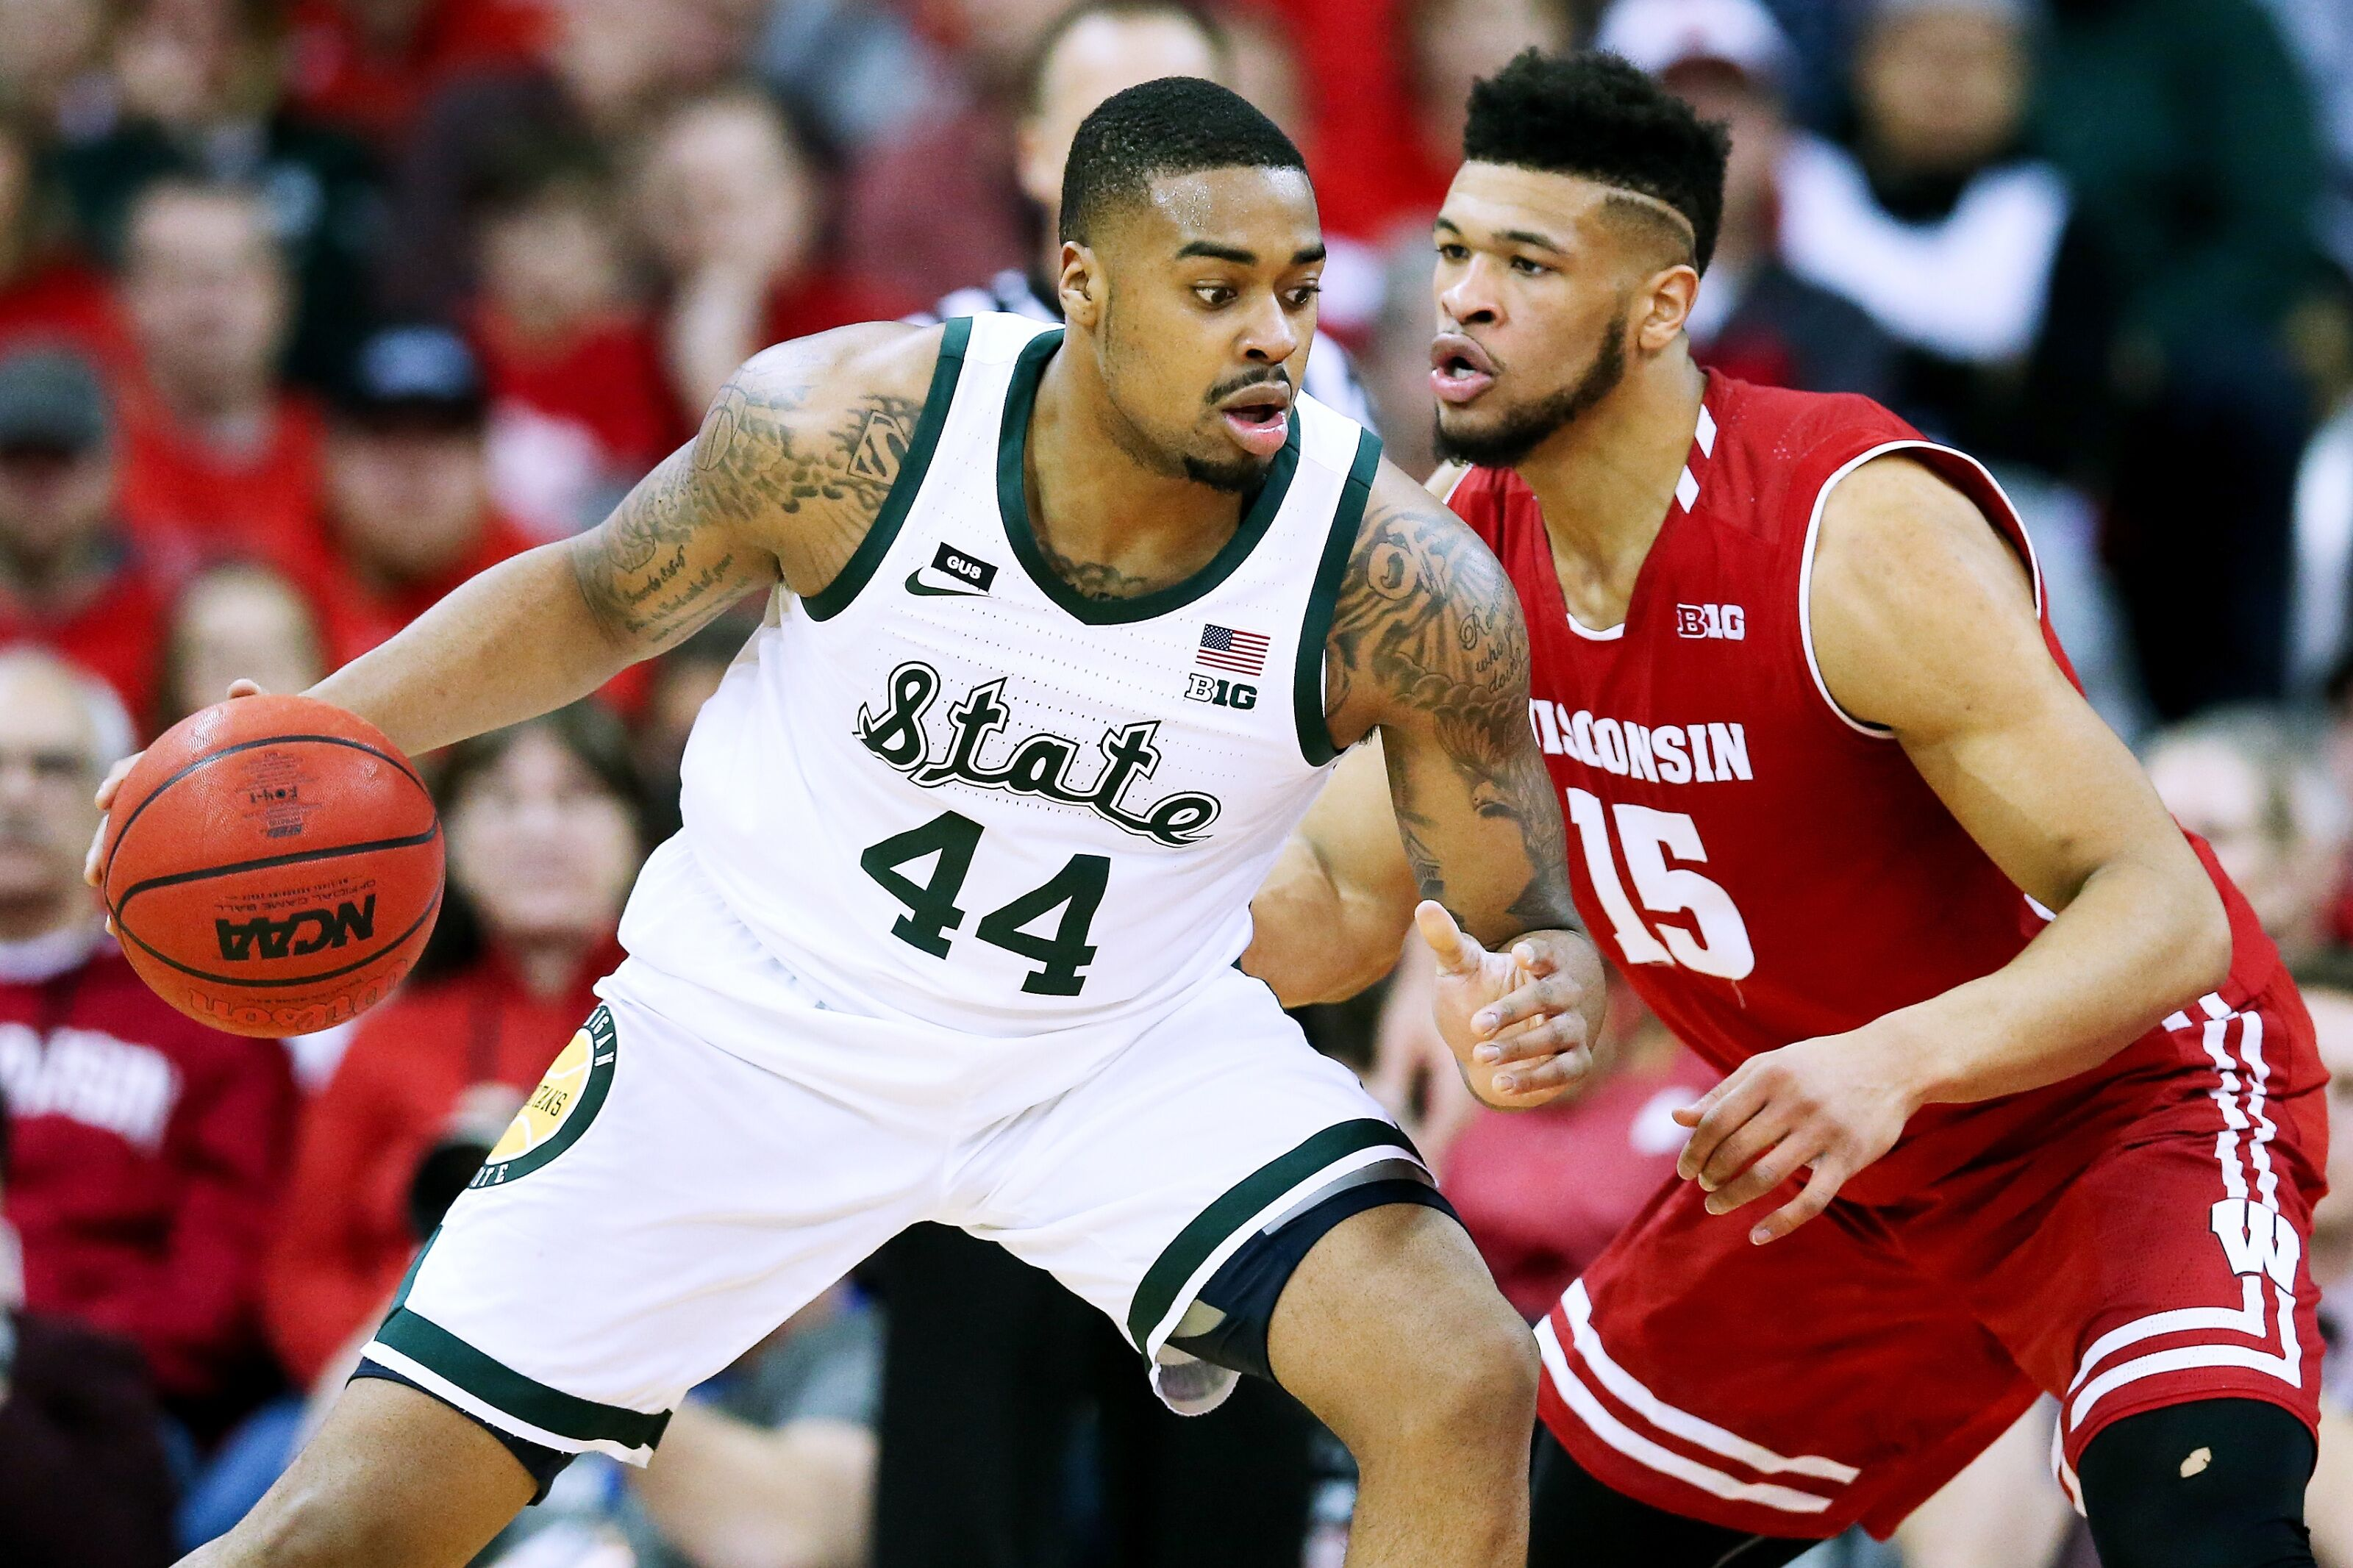 Michigan State basketball makes statement with huge win at Wisconsin